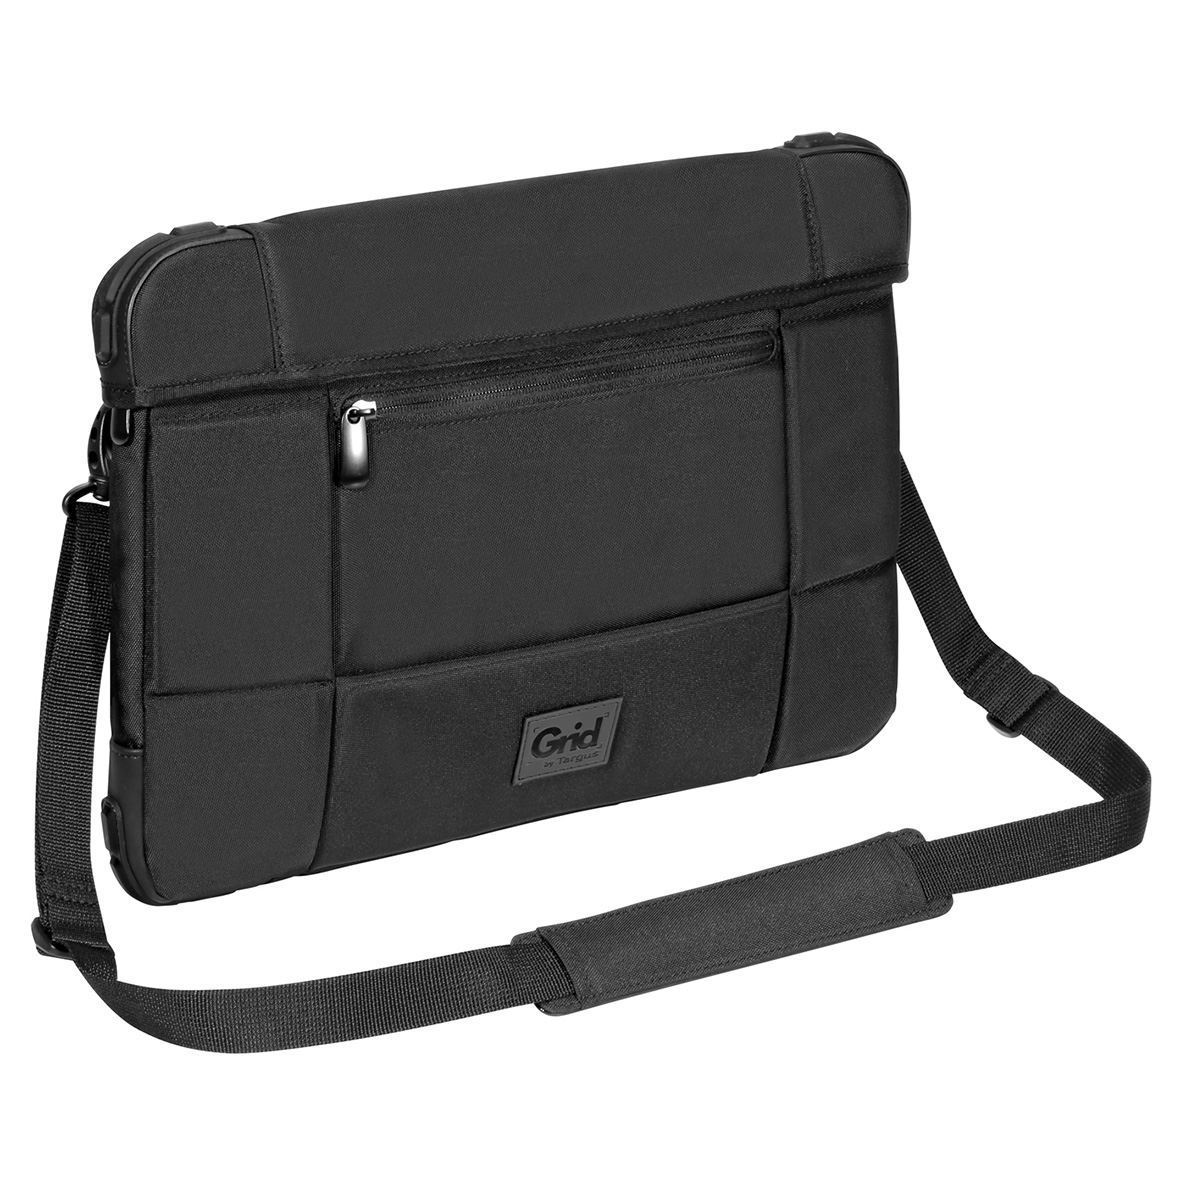 fa613eed5f8f Targus.com: Shop Online for Laptop Bags, Tablet Cases, Computer ...